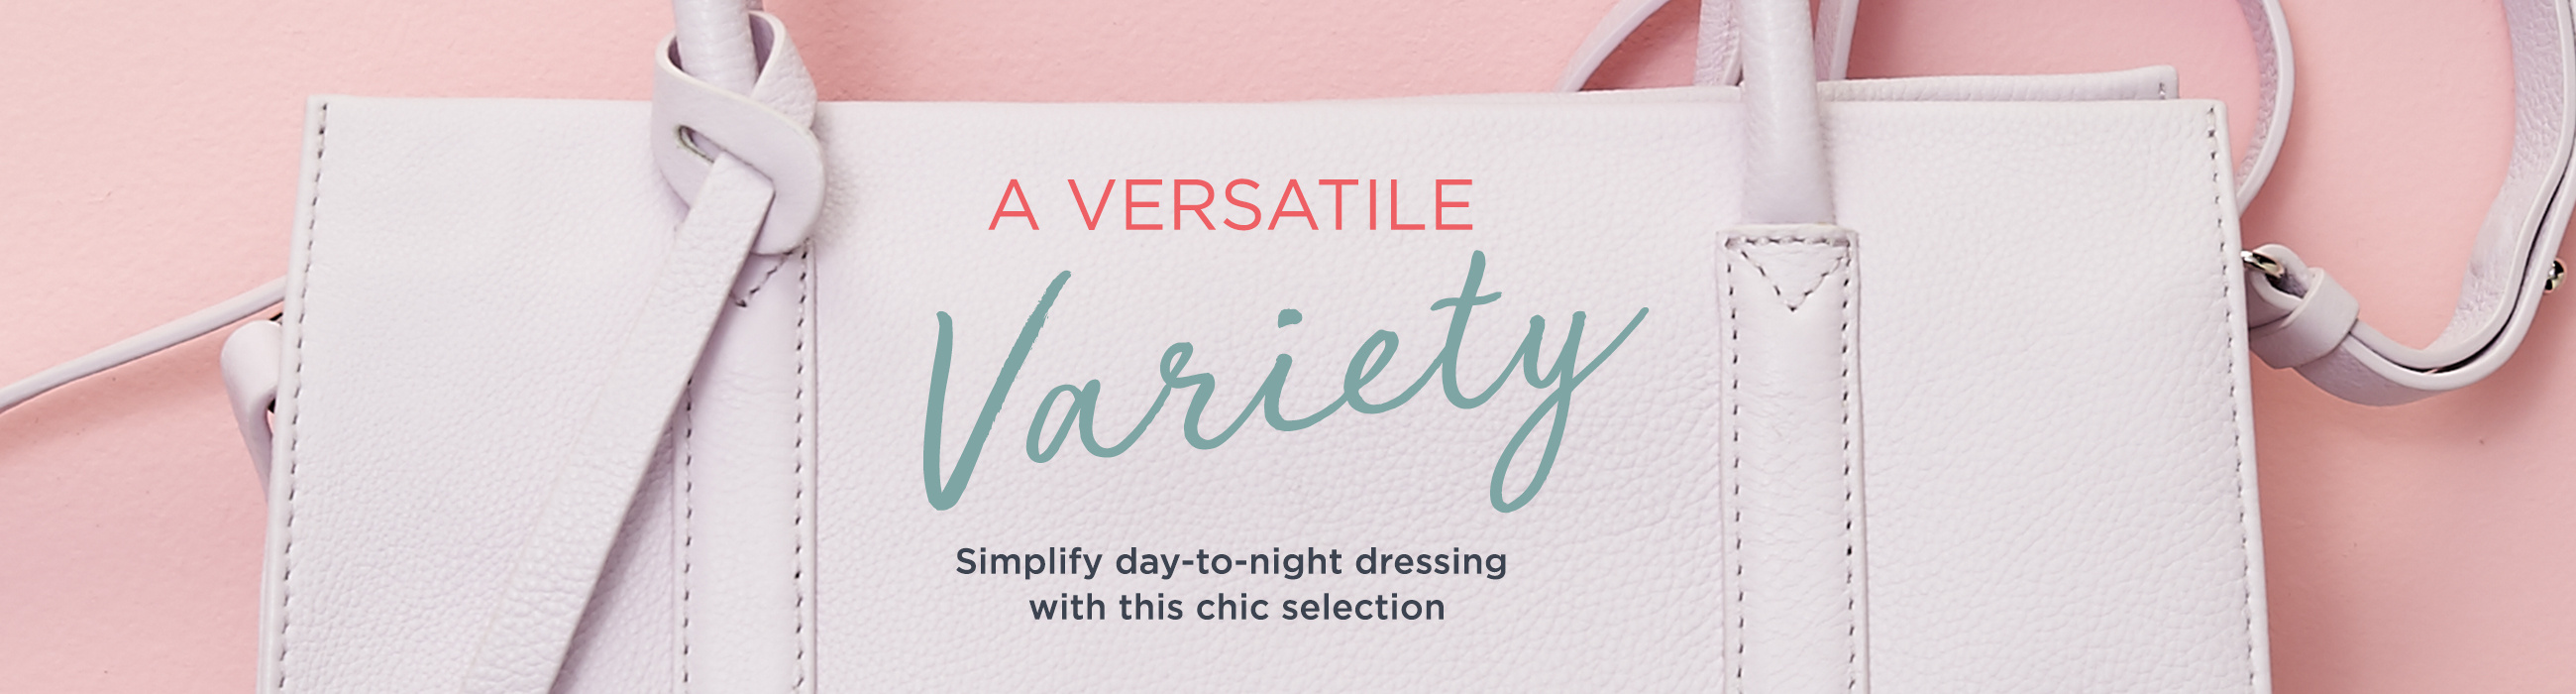 A Versatile Variety.  Simplify day-to-night dressing with this chic selection